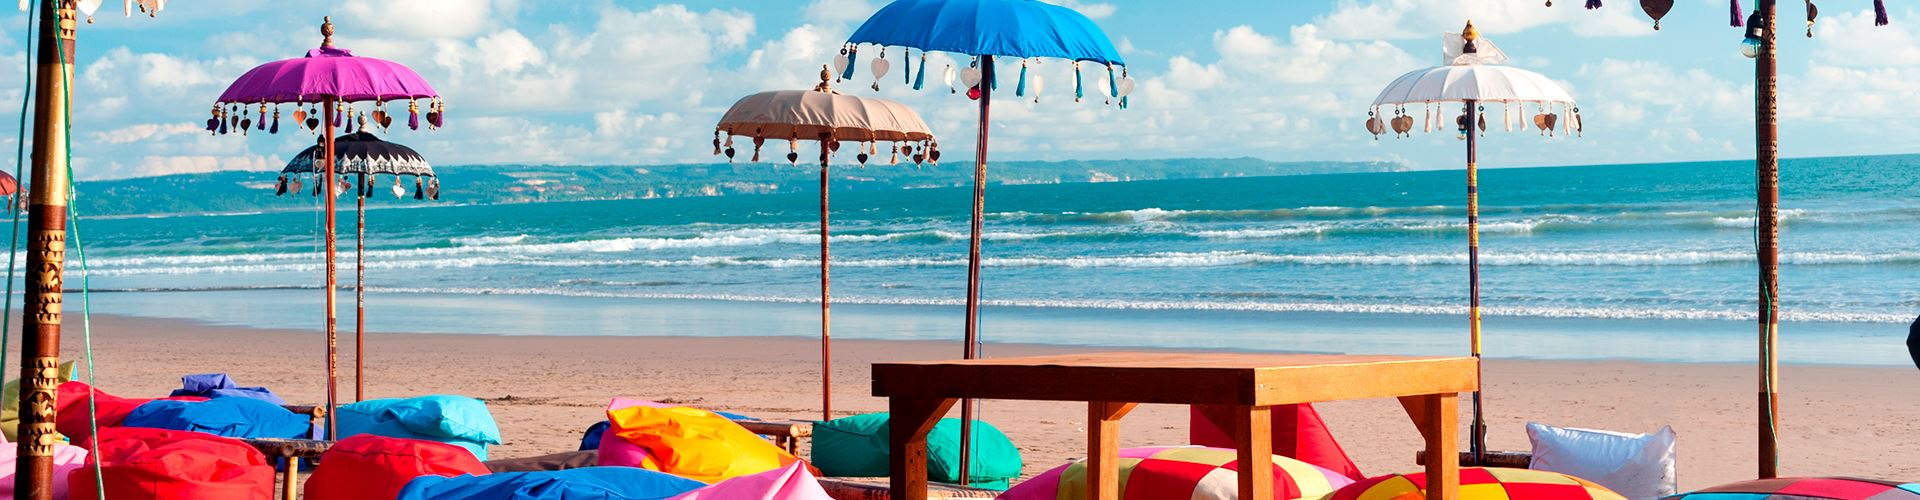 Colorful-beach-umbrellas-and-pillows-in-Kuta.jpg